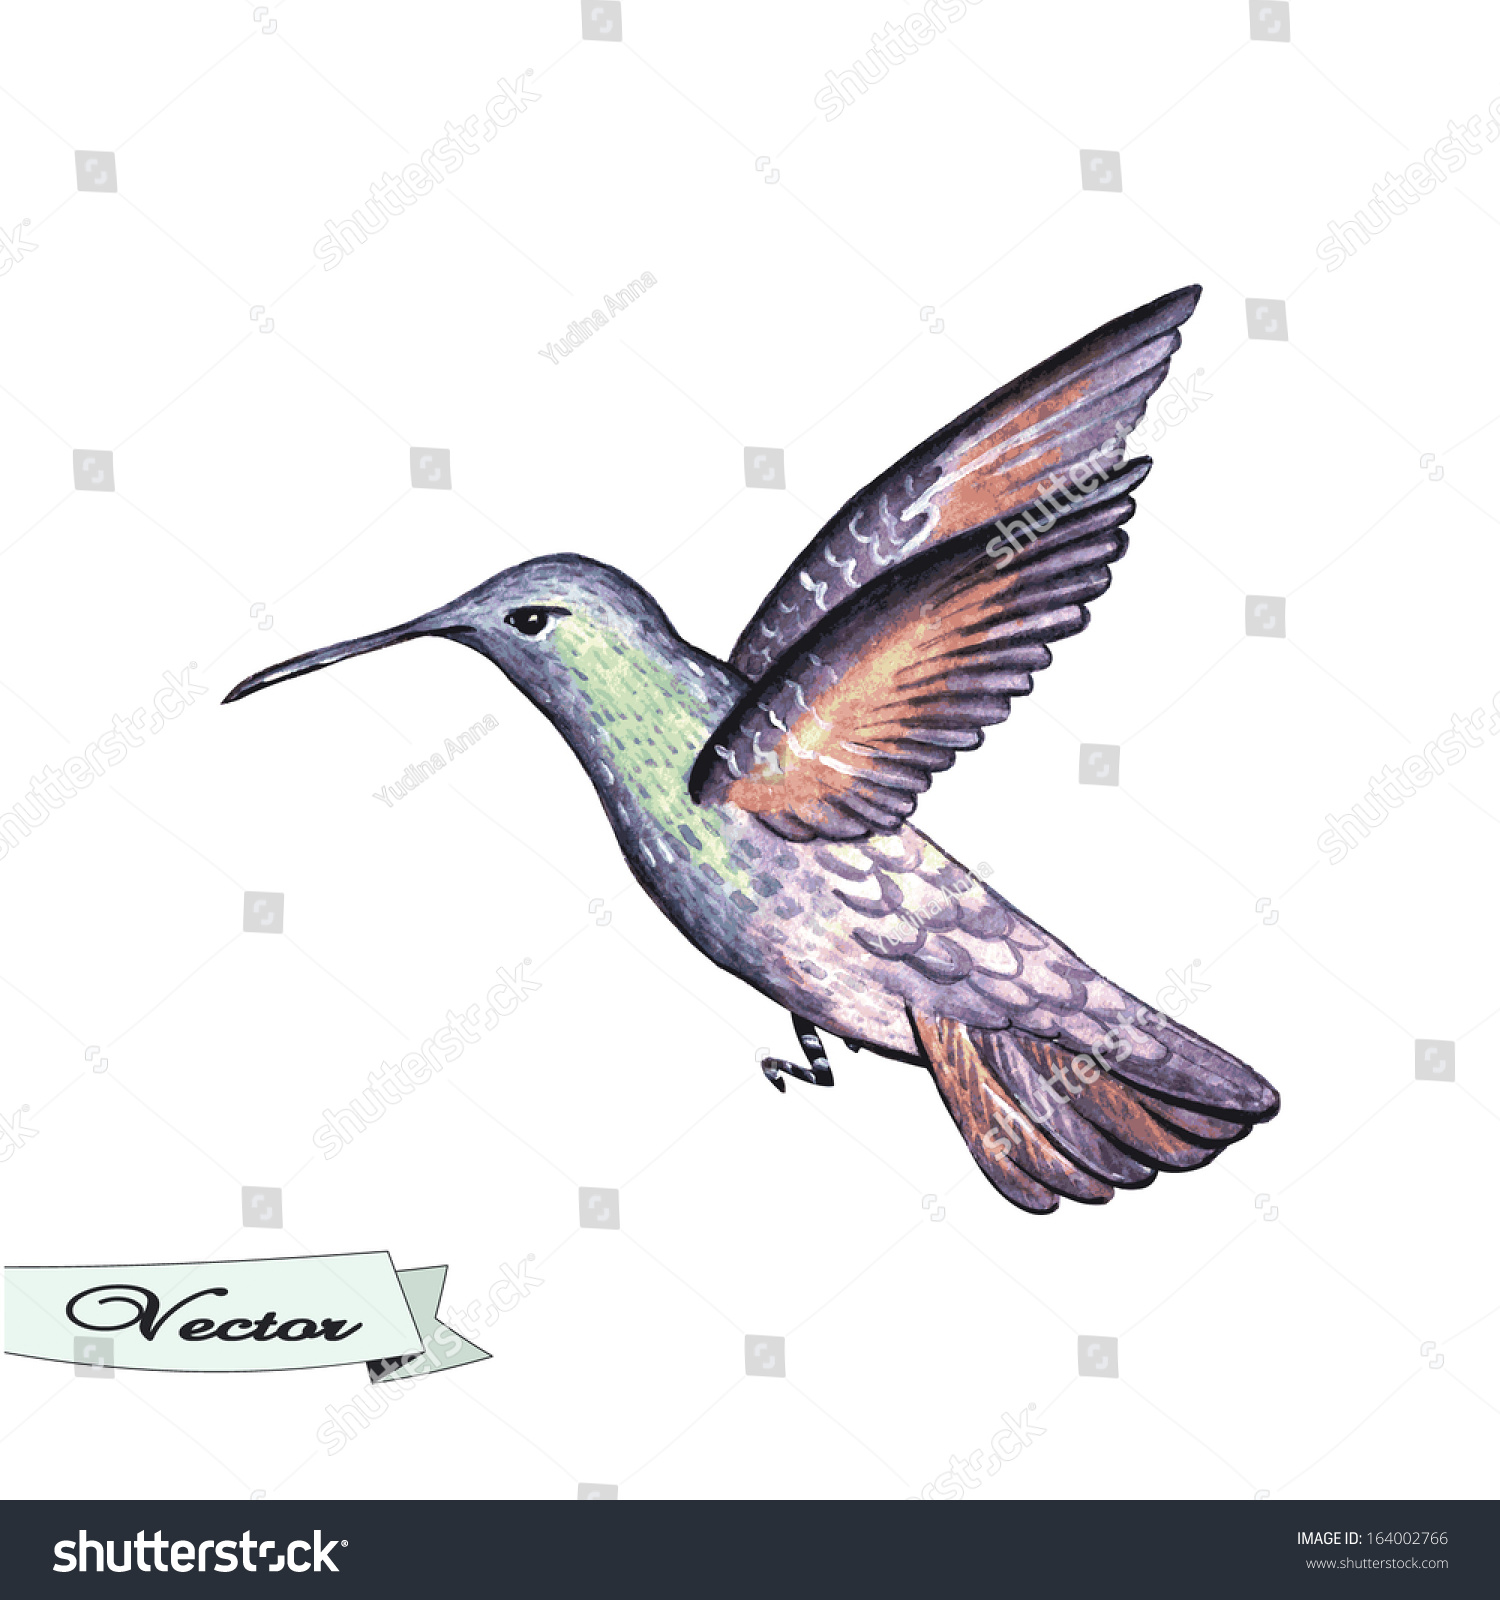 Vector watercolor hummingbird vector illustration for greeting id 164002766 m4hsunfo